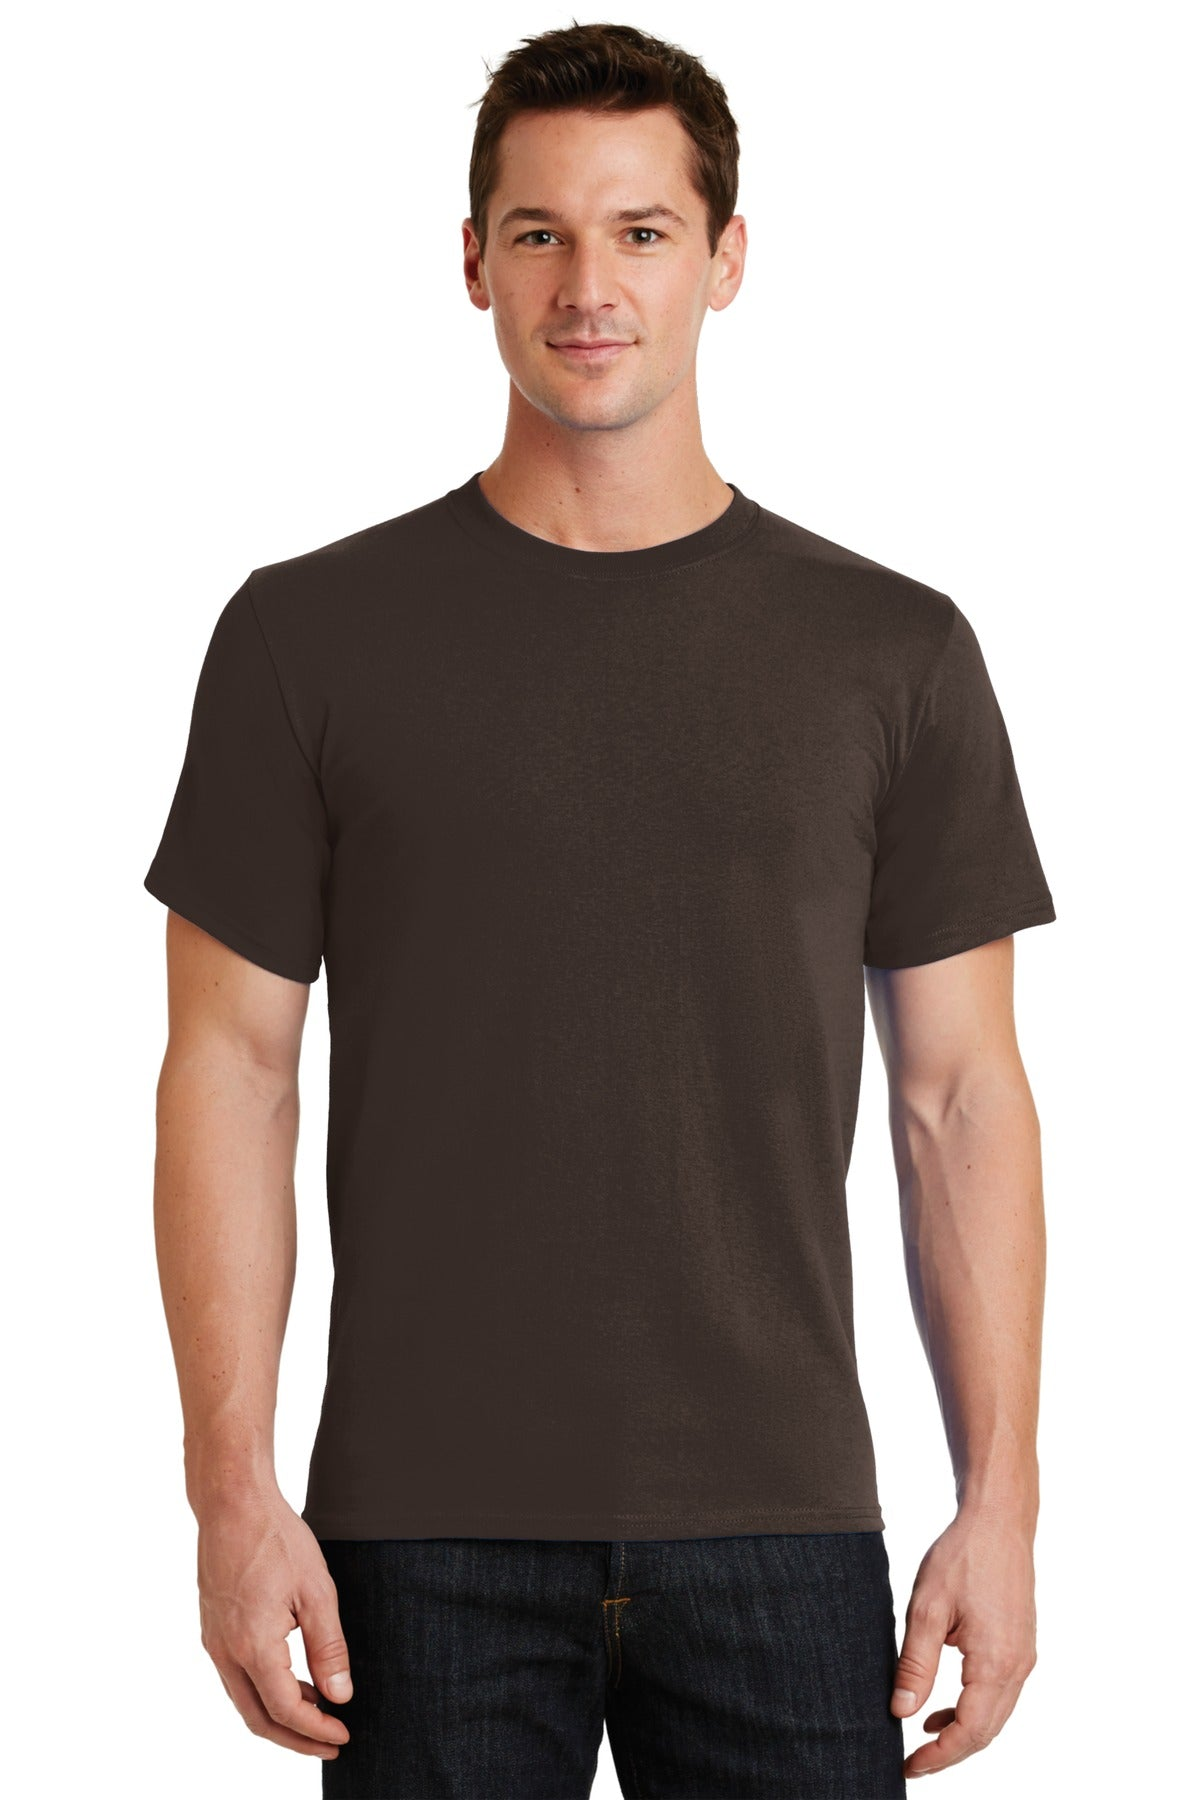 Dark Chocolate Brown Port & Company - Essential T-Shirt